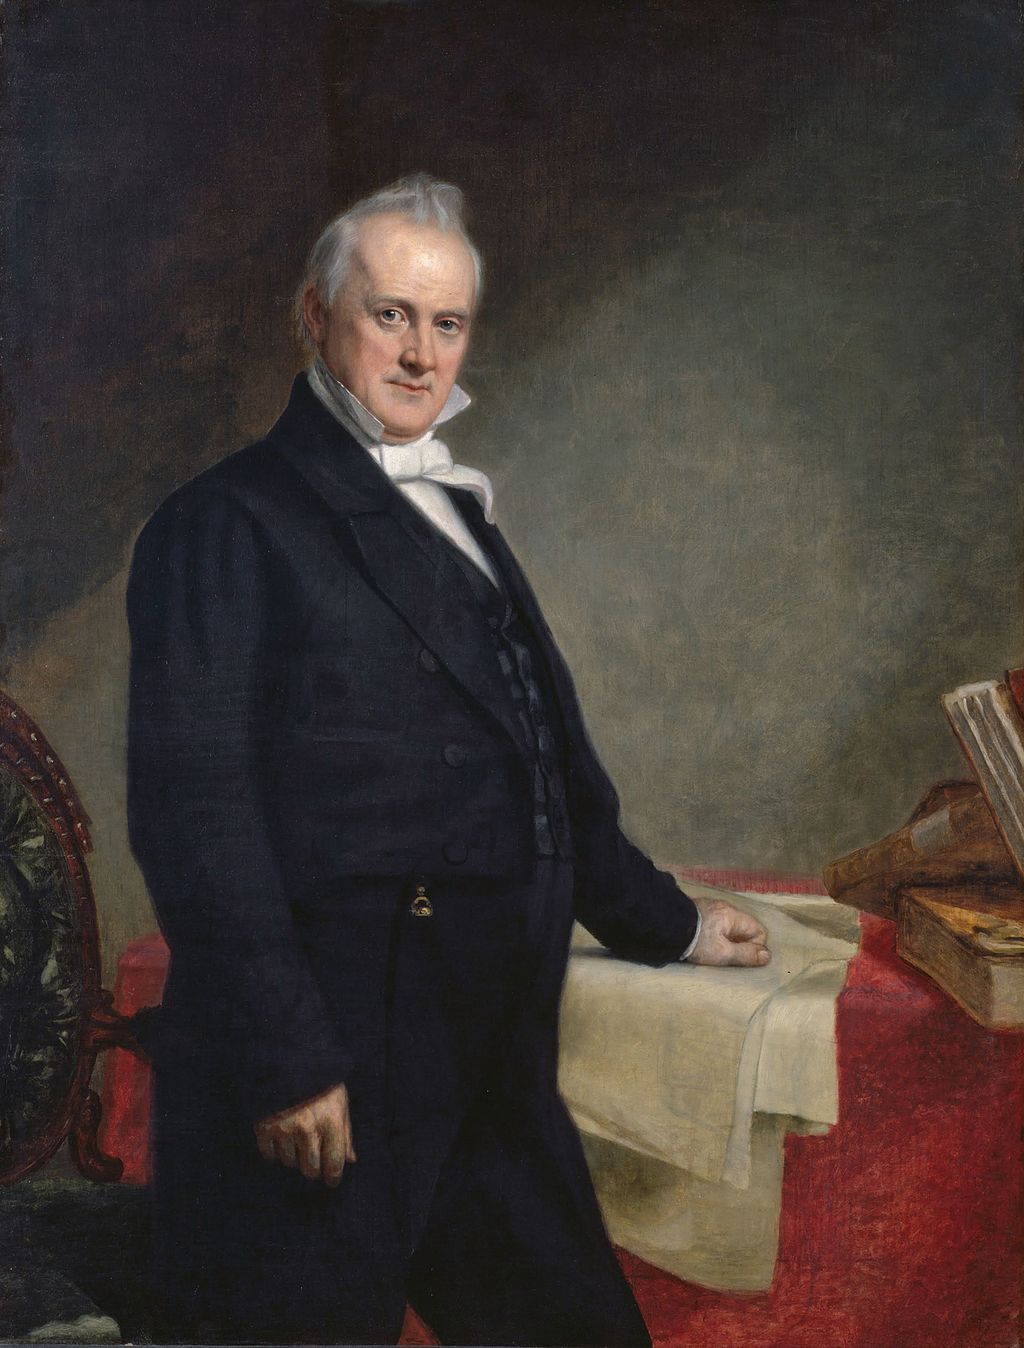 1859 portrait of President James Buchanan. Painting by George Peter Alexander Healy.